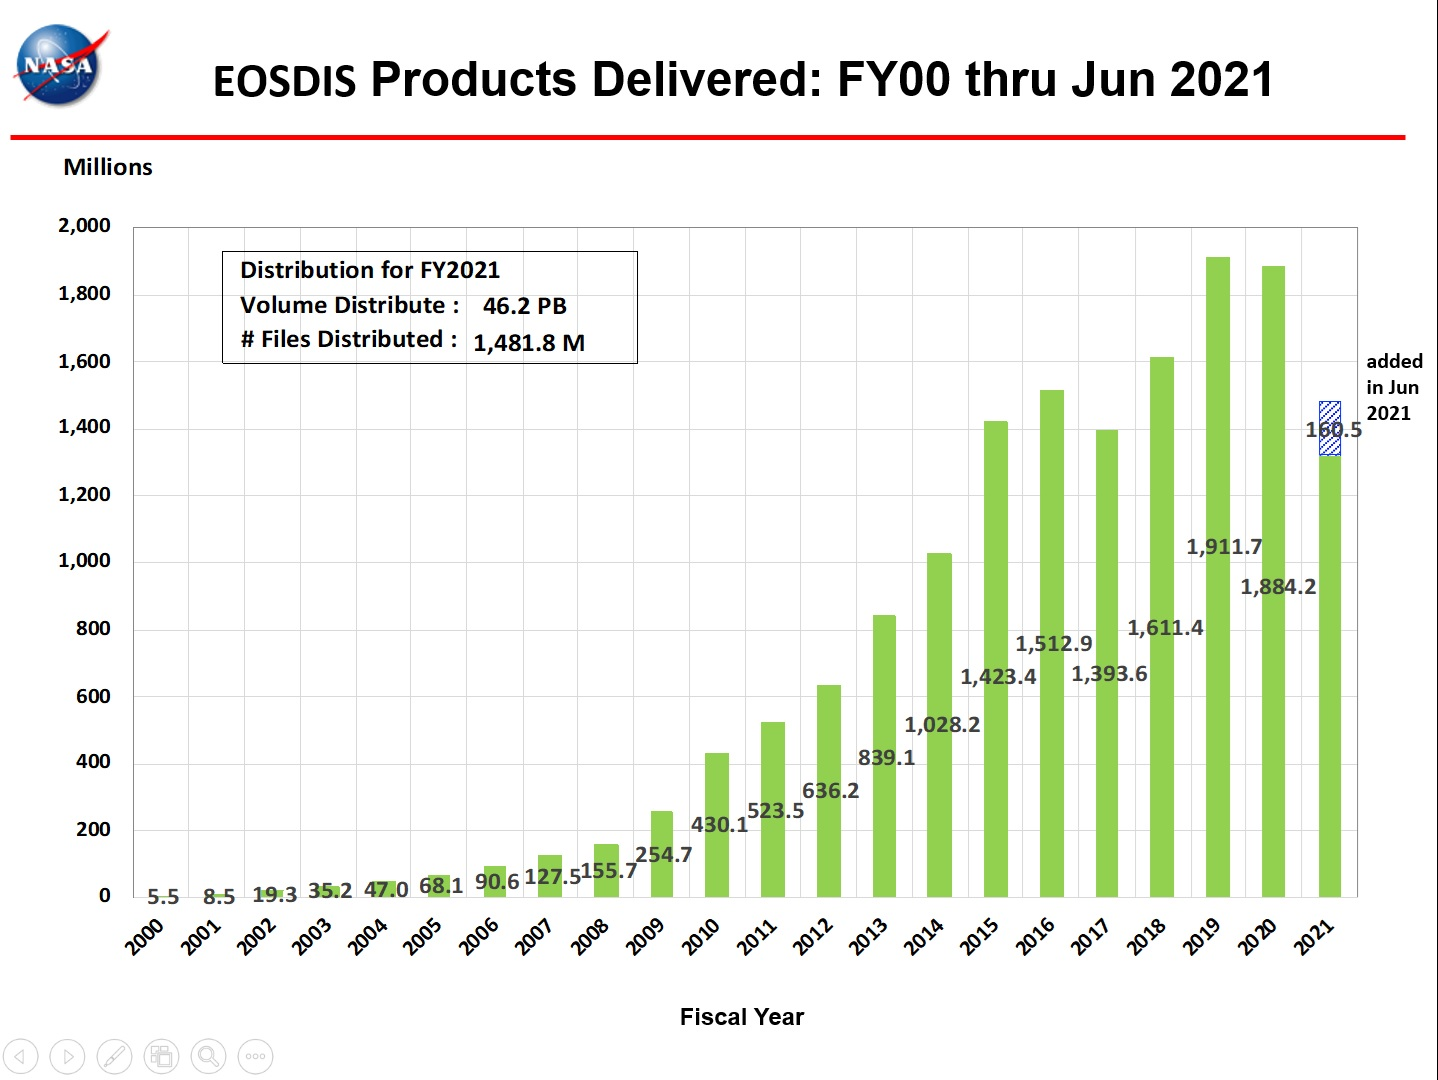 EOSDIS Products Delivered 1-2021